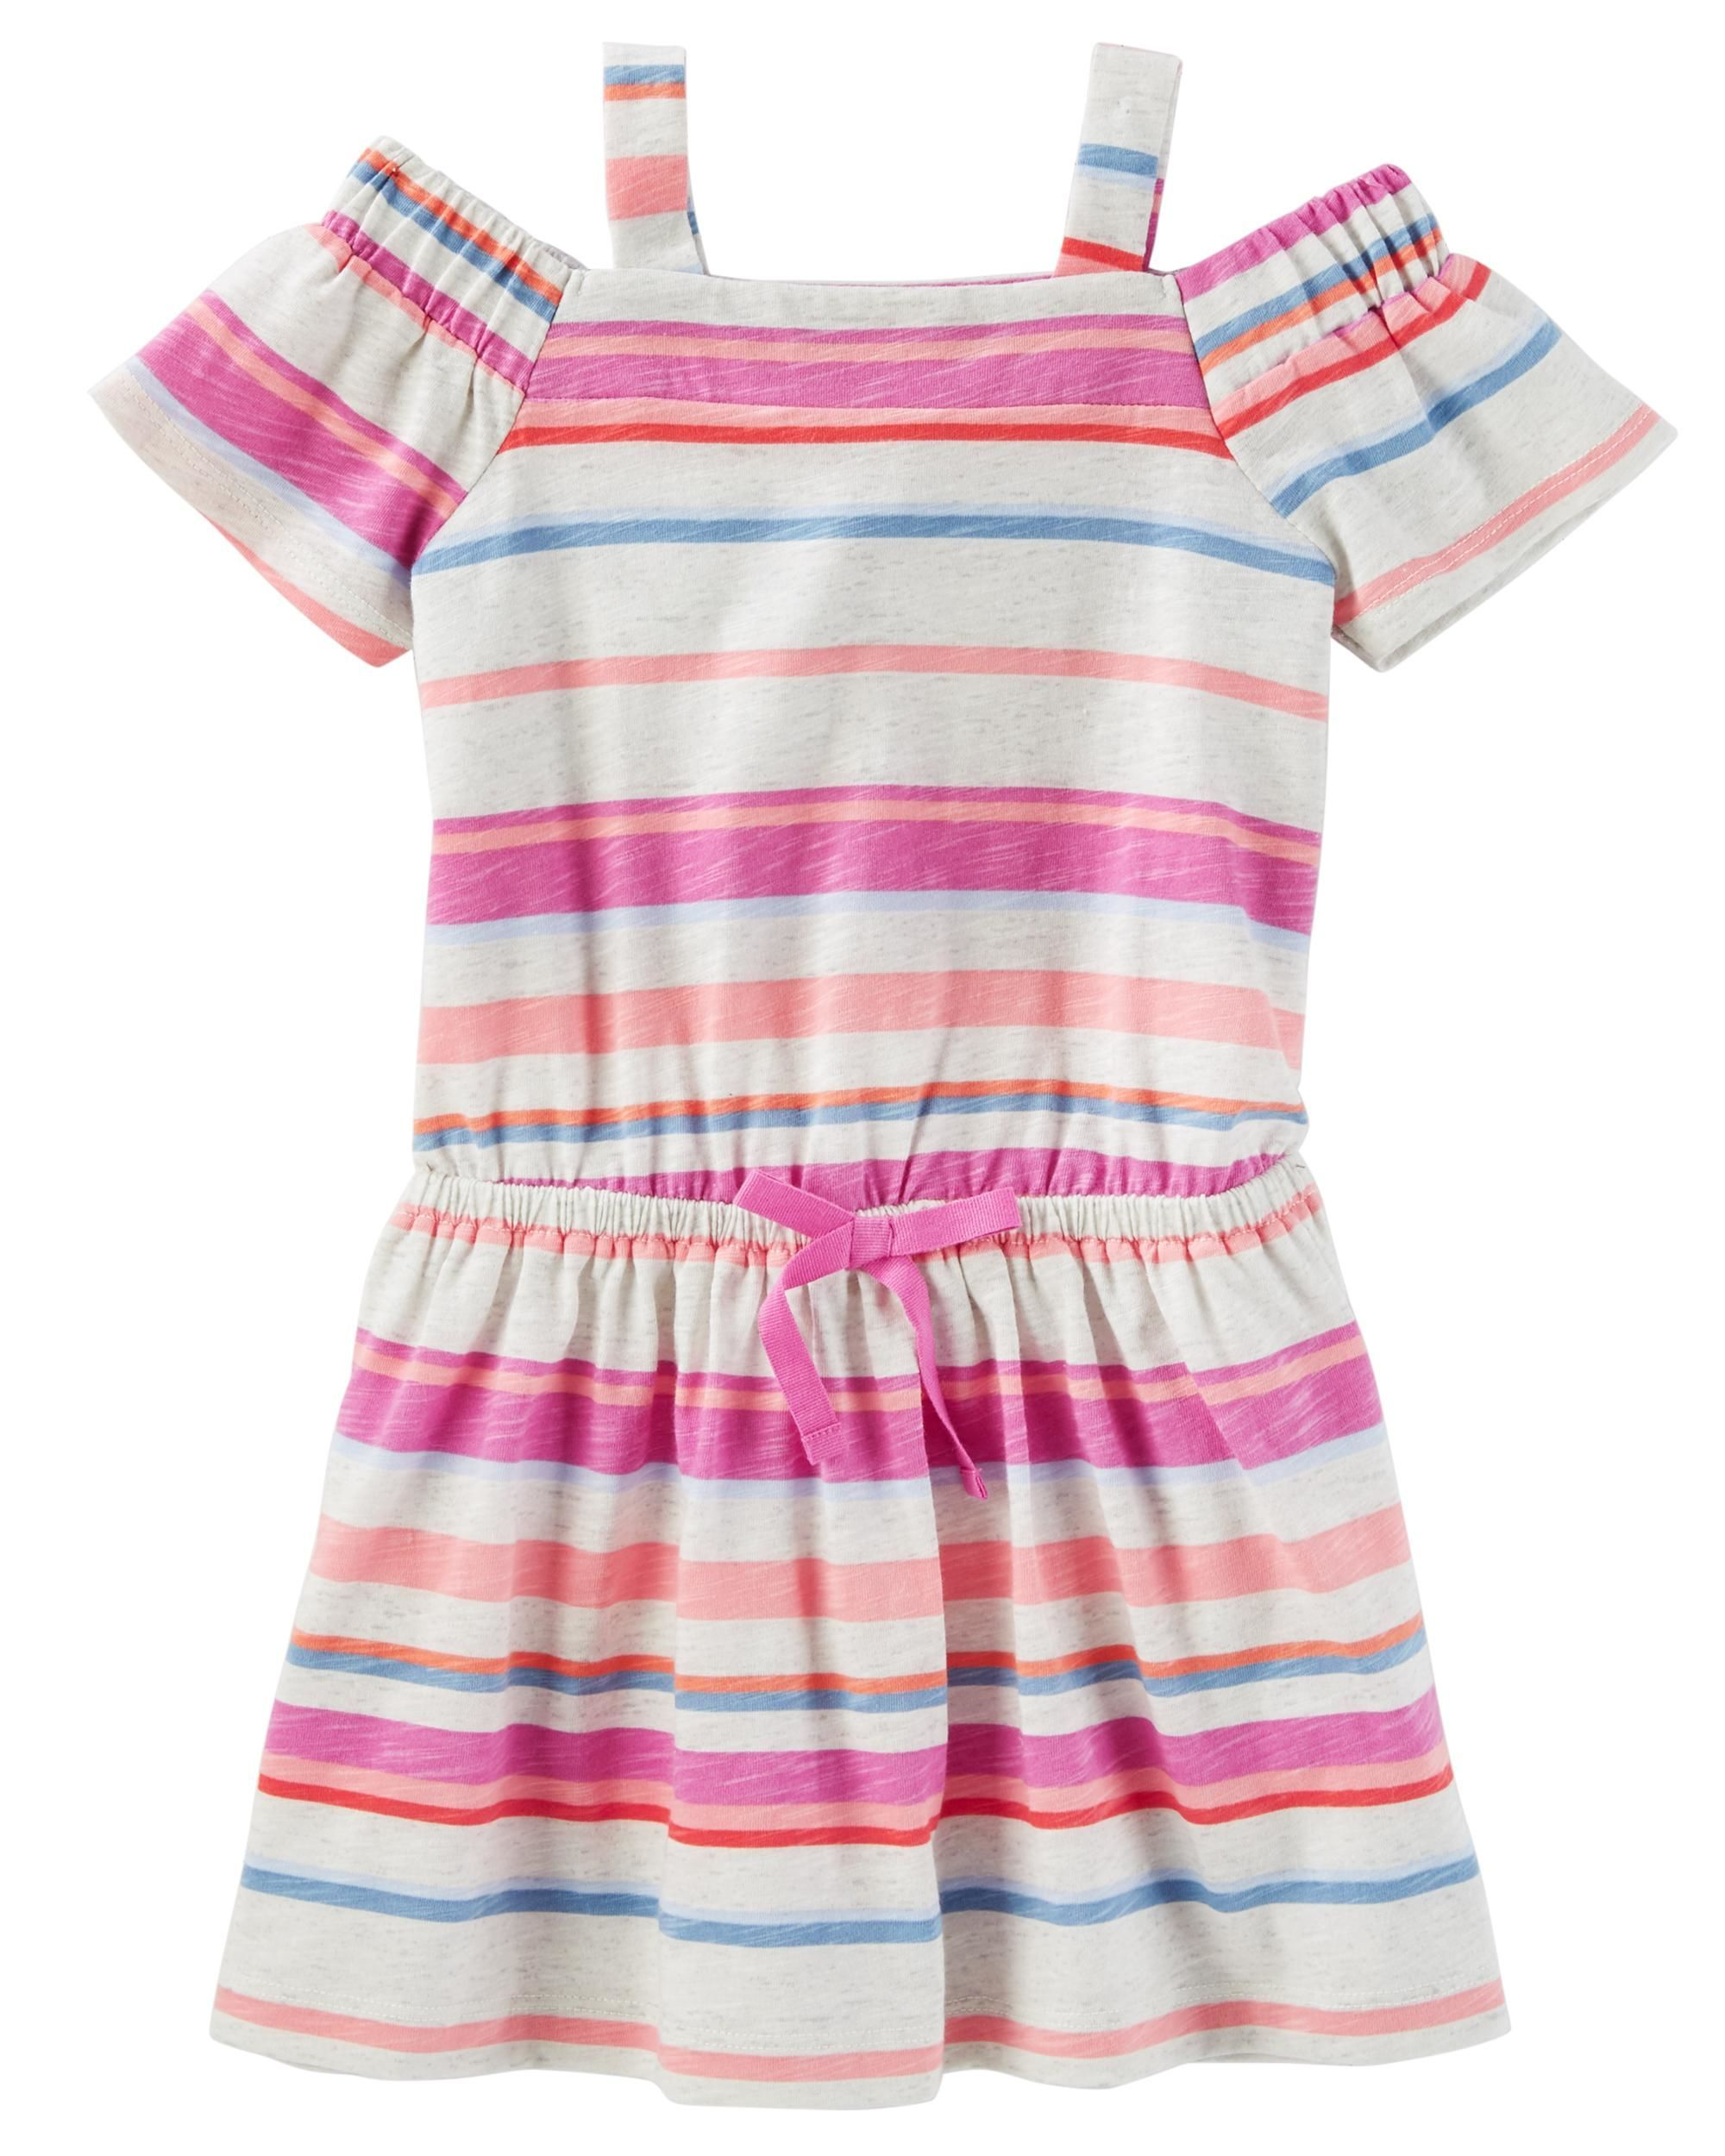 Cold shoulder dress kids girls toddler girls and toddler outfits toddler girl plaid poplin top from oshkosh bgosh shop clothing accessories from a trusted name in kids toddlers and baby clothes negle Images